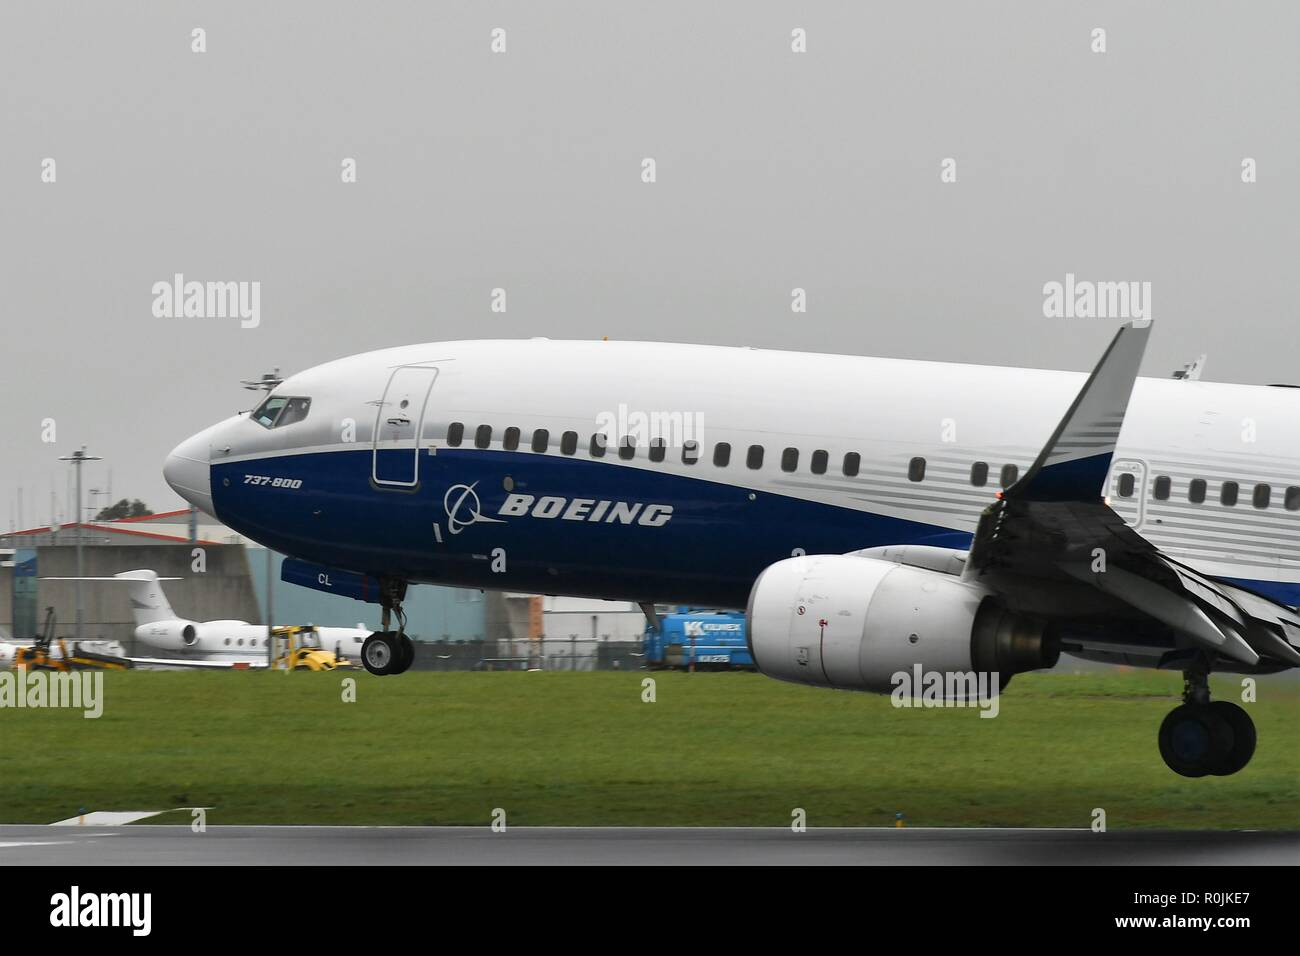 Ryanair Boeing 737-800 with dreamliner livery - Stock Image